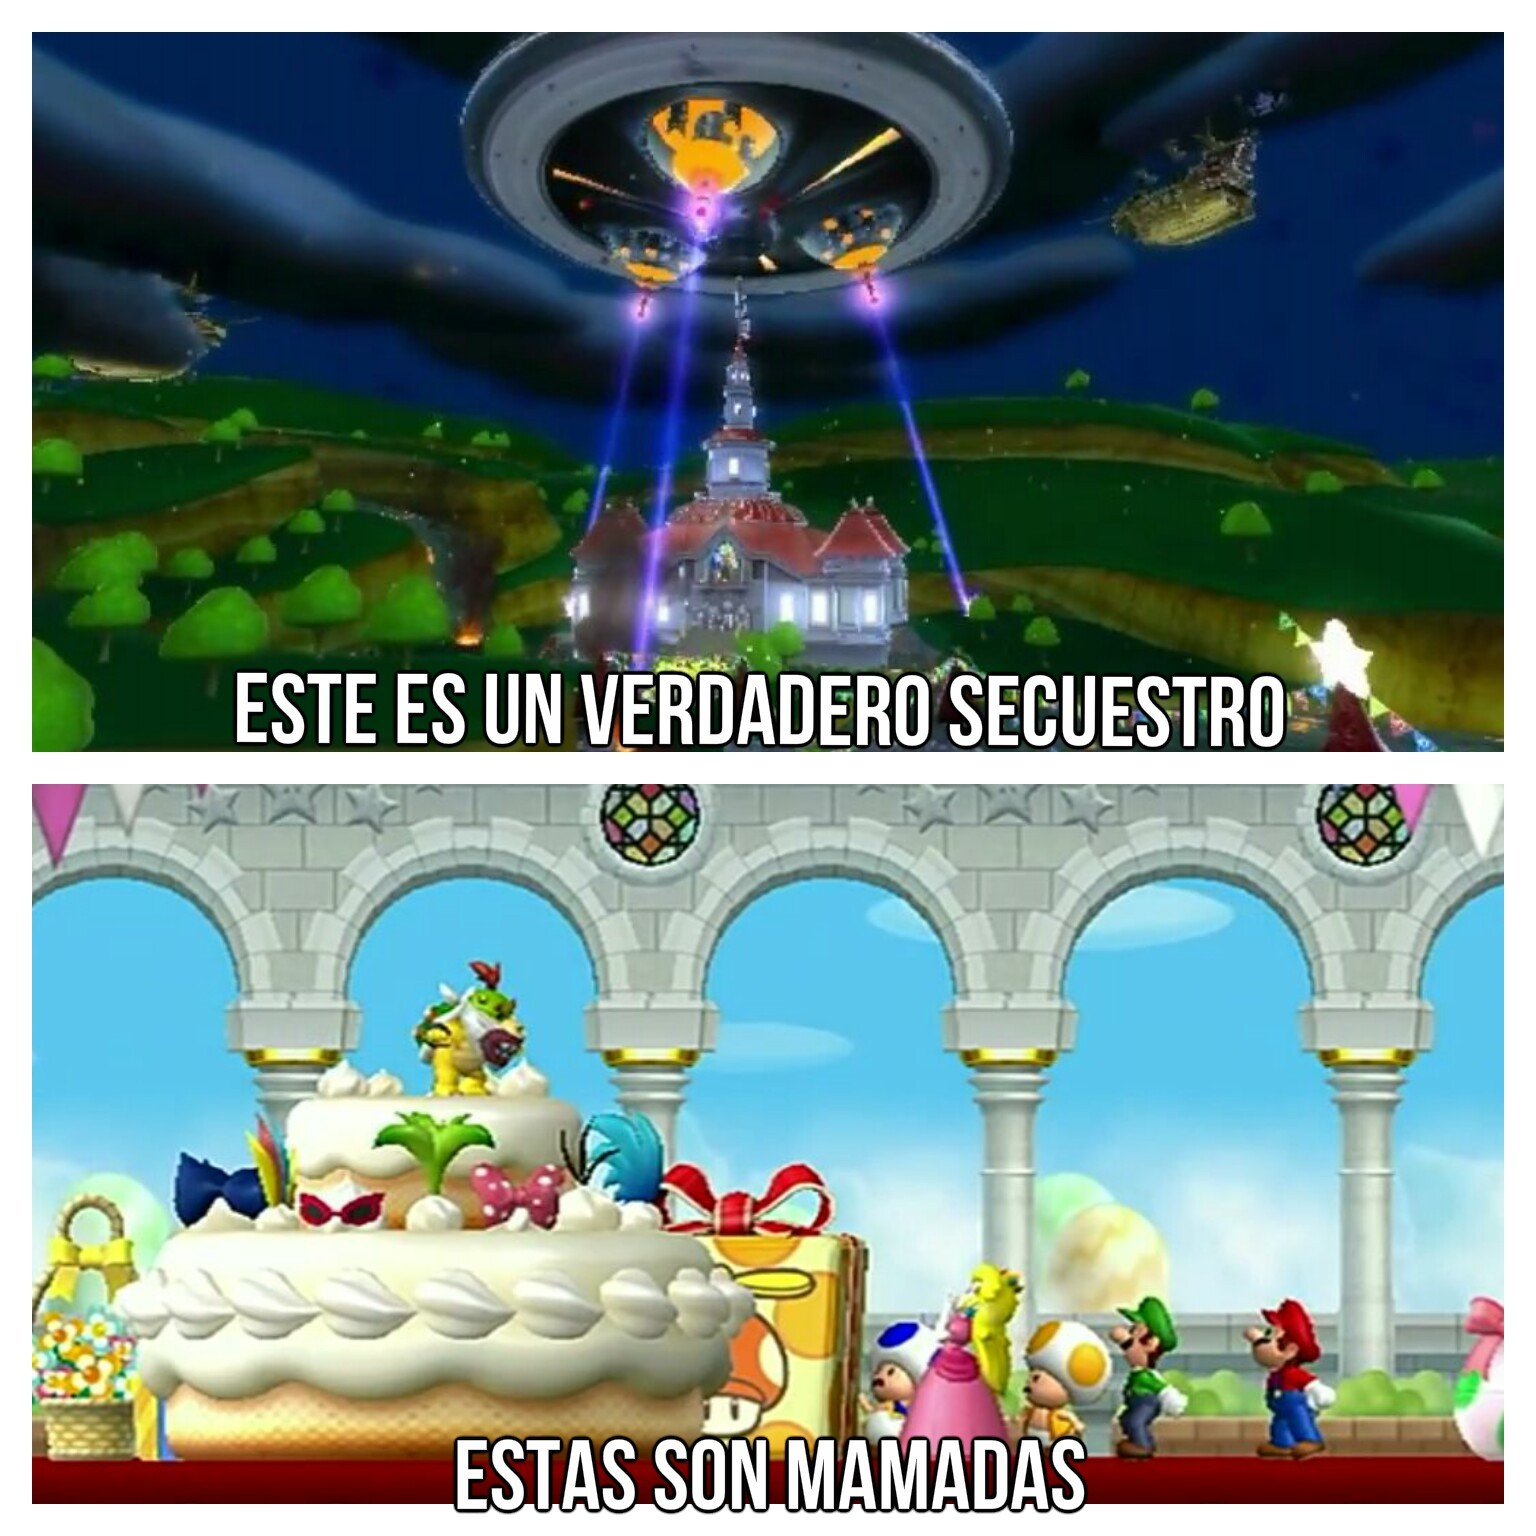 Ese Bowser y sus ideas de secuestro - meme